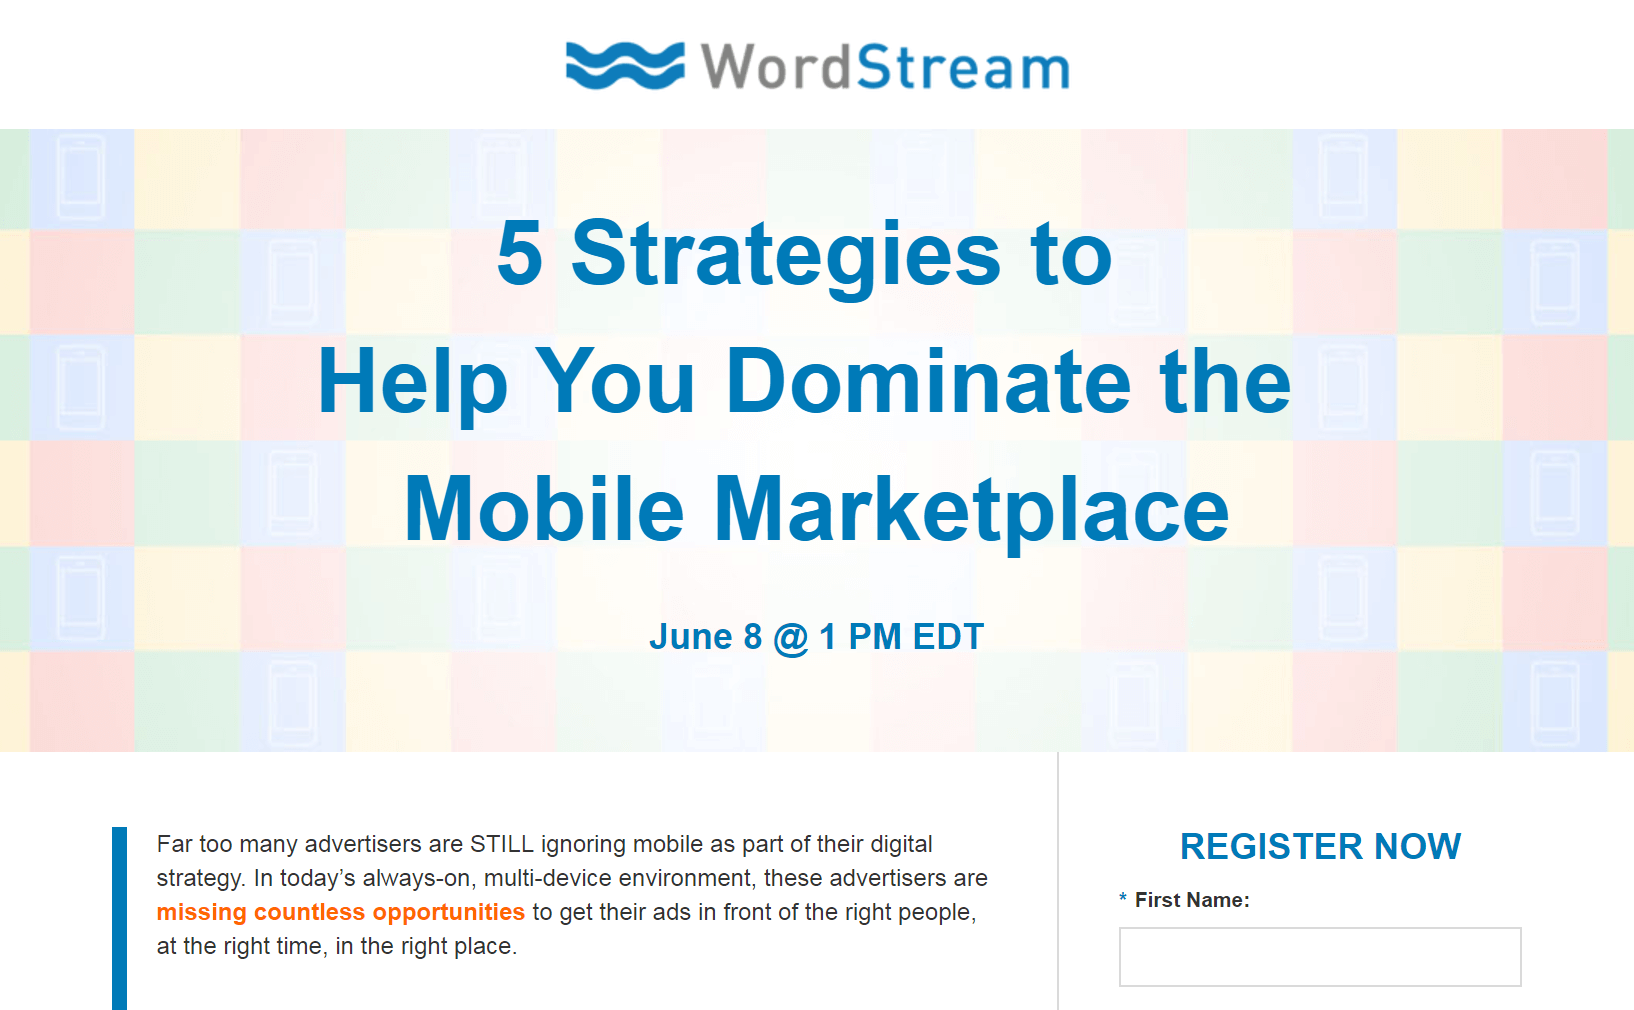 A WordStream webinar.